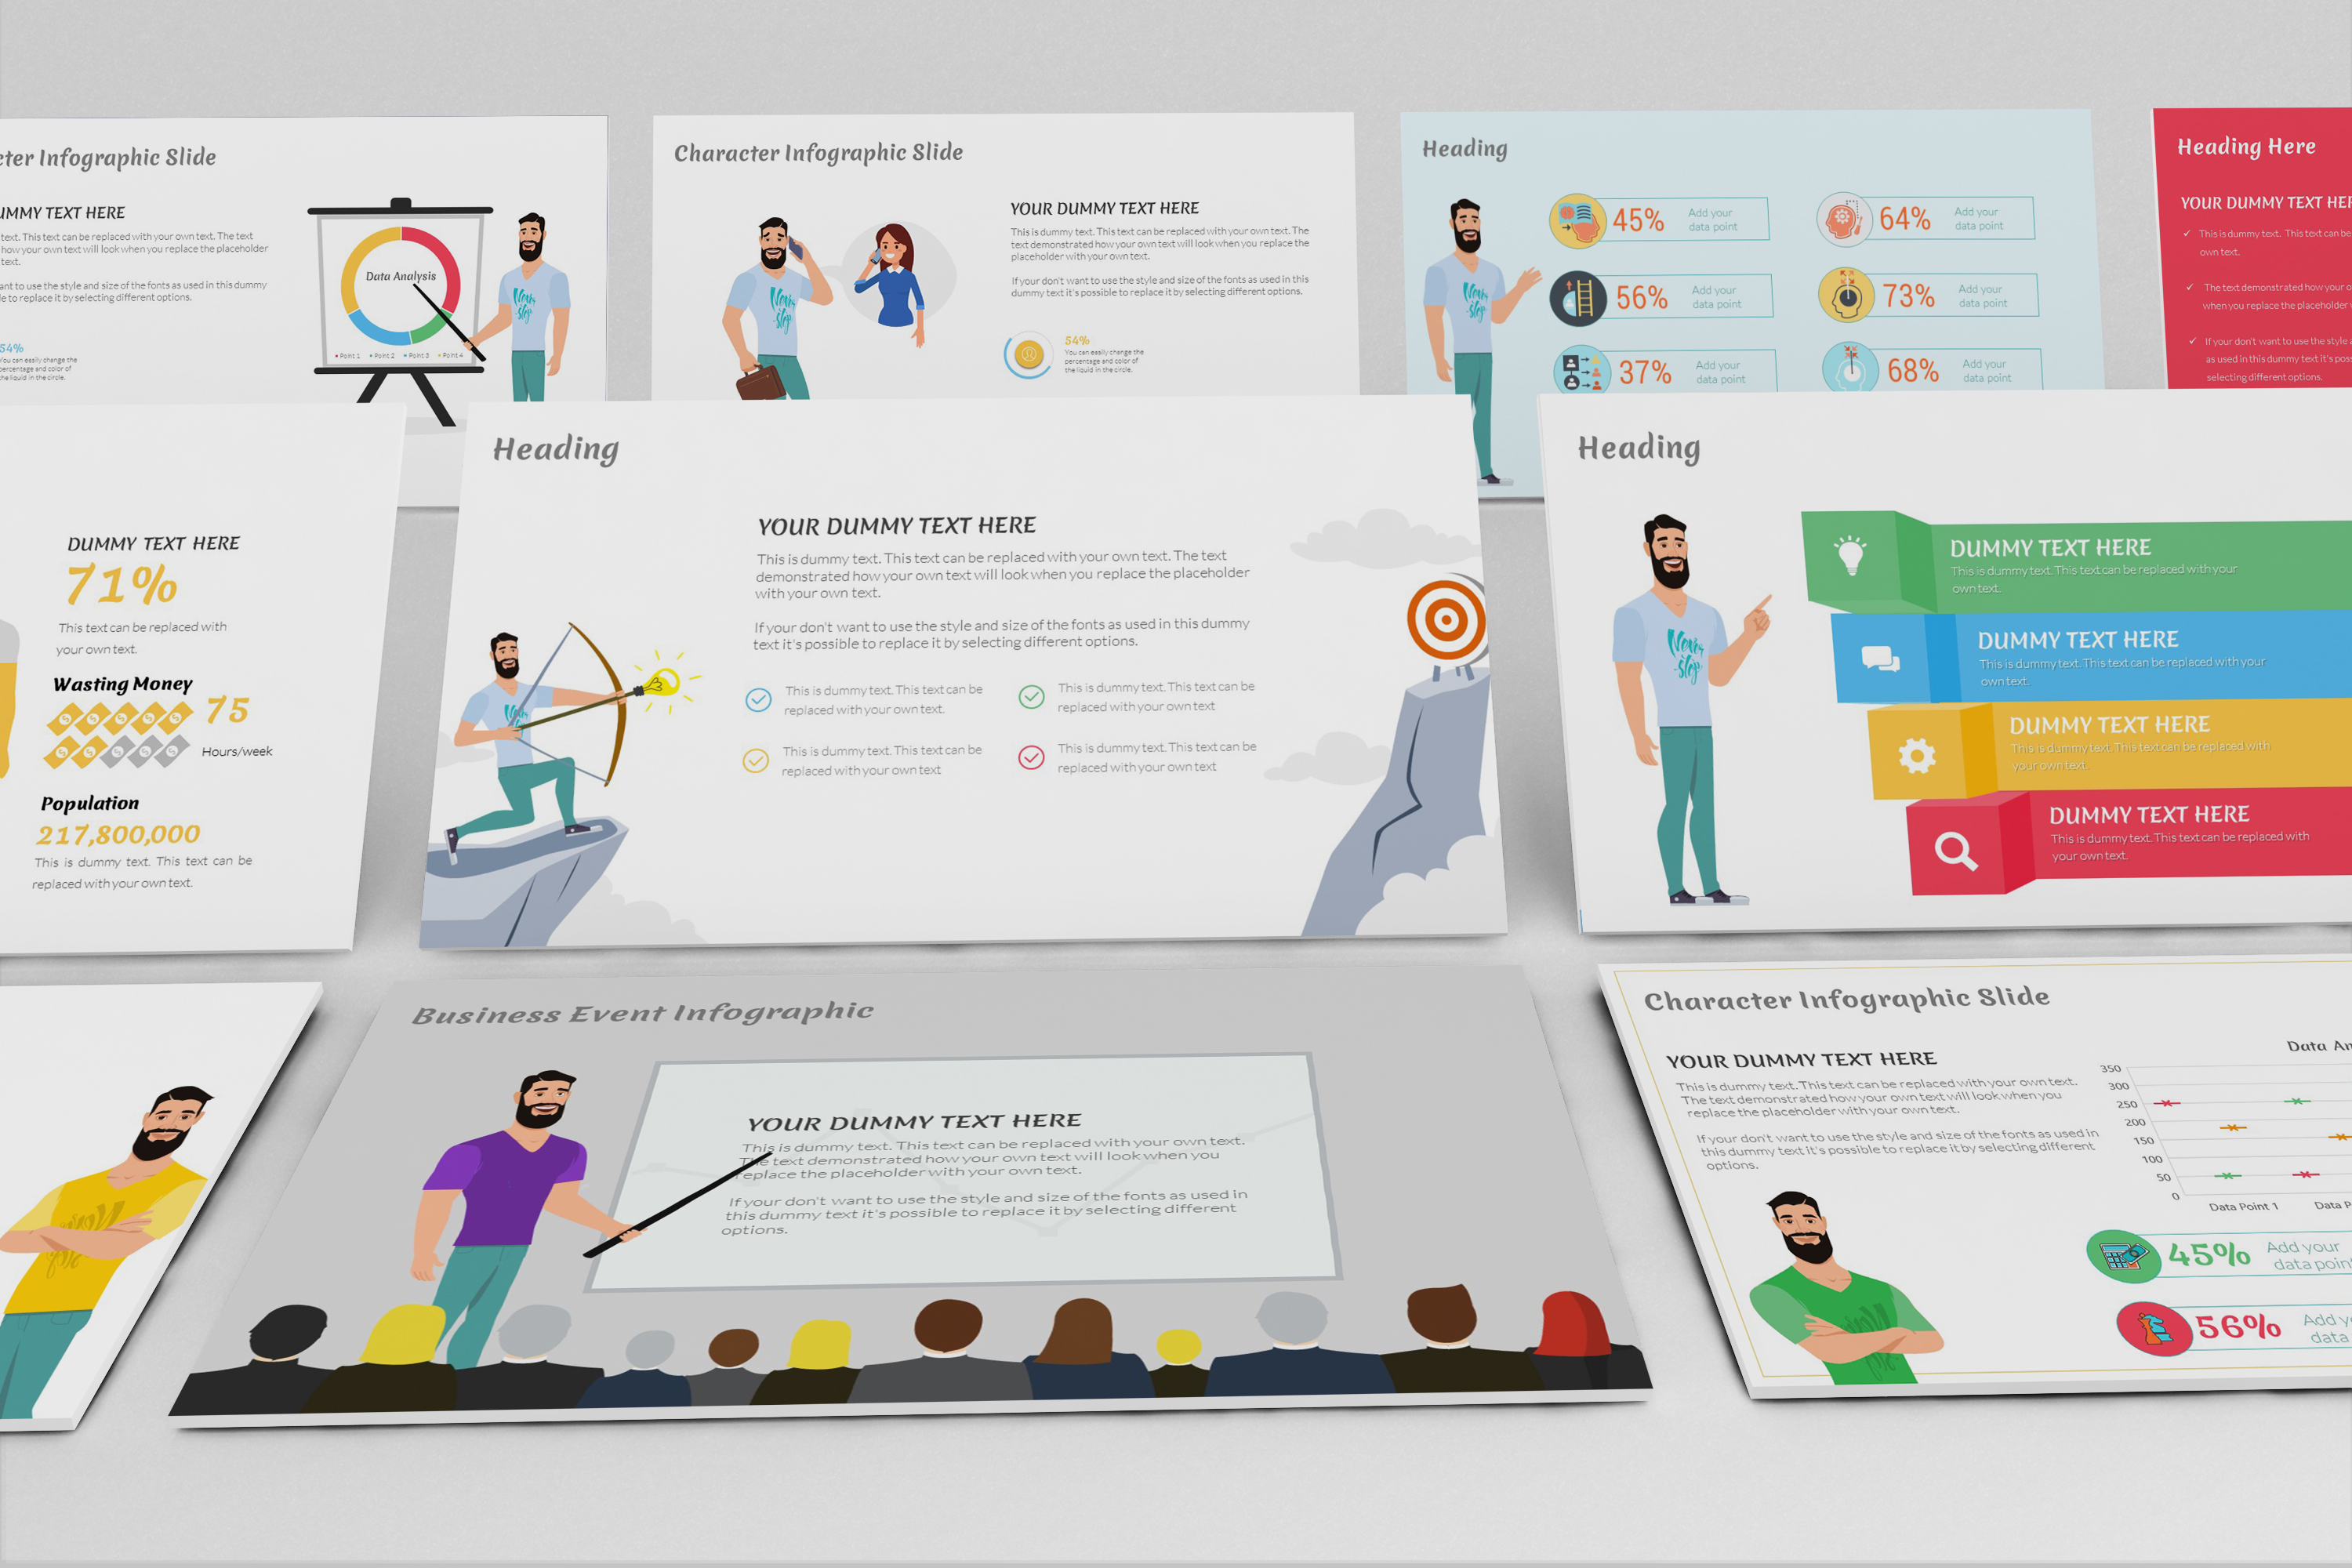 E-Trainer PowerPoint Template 1 example image 3